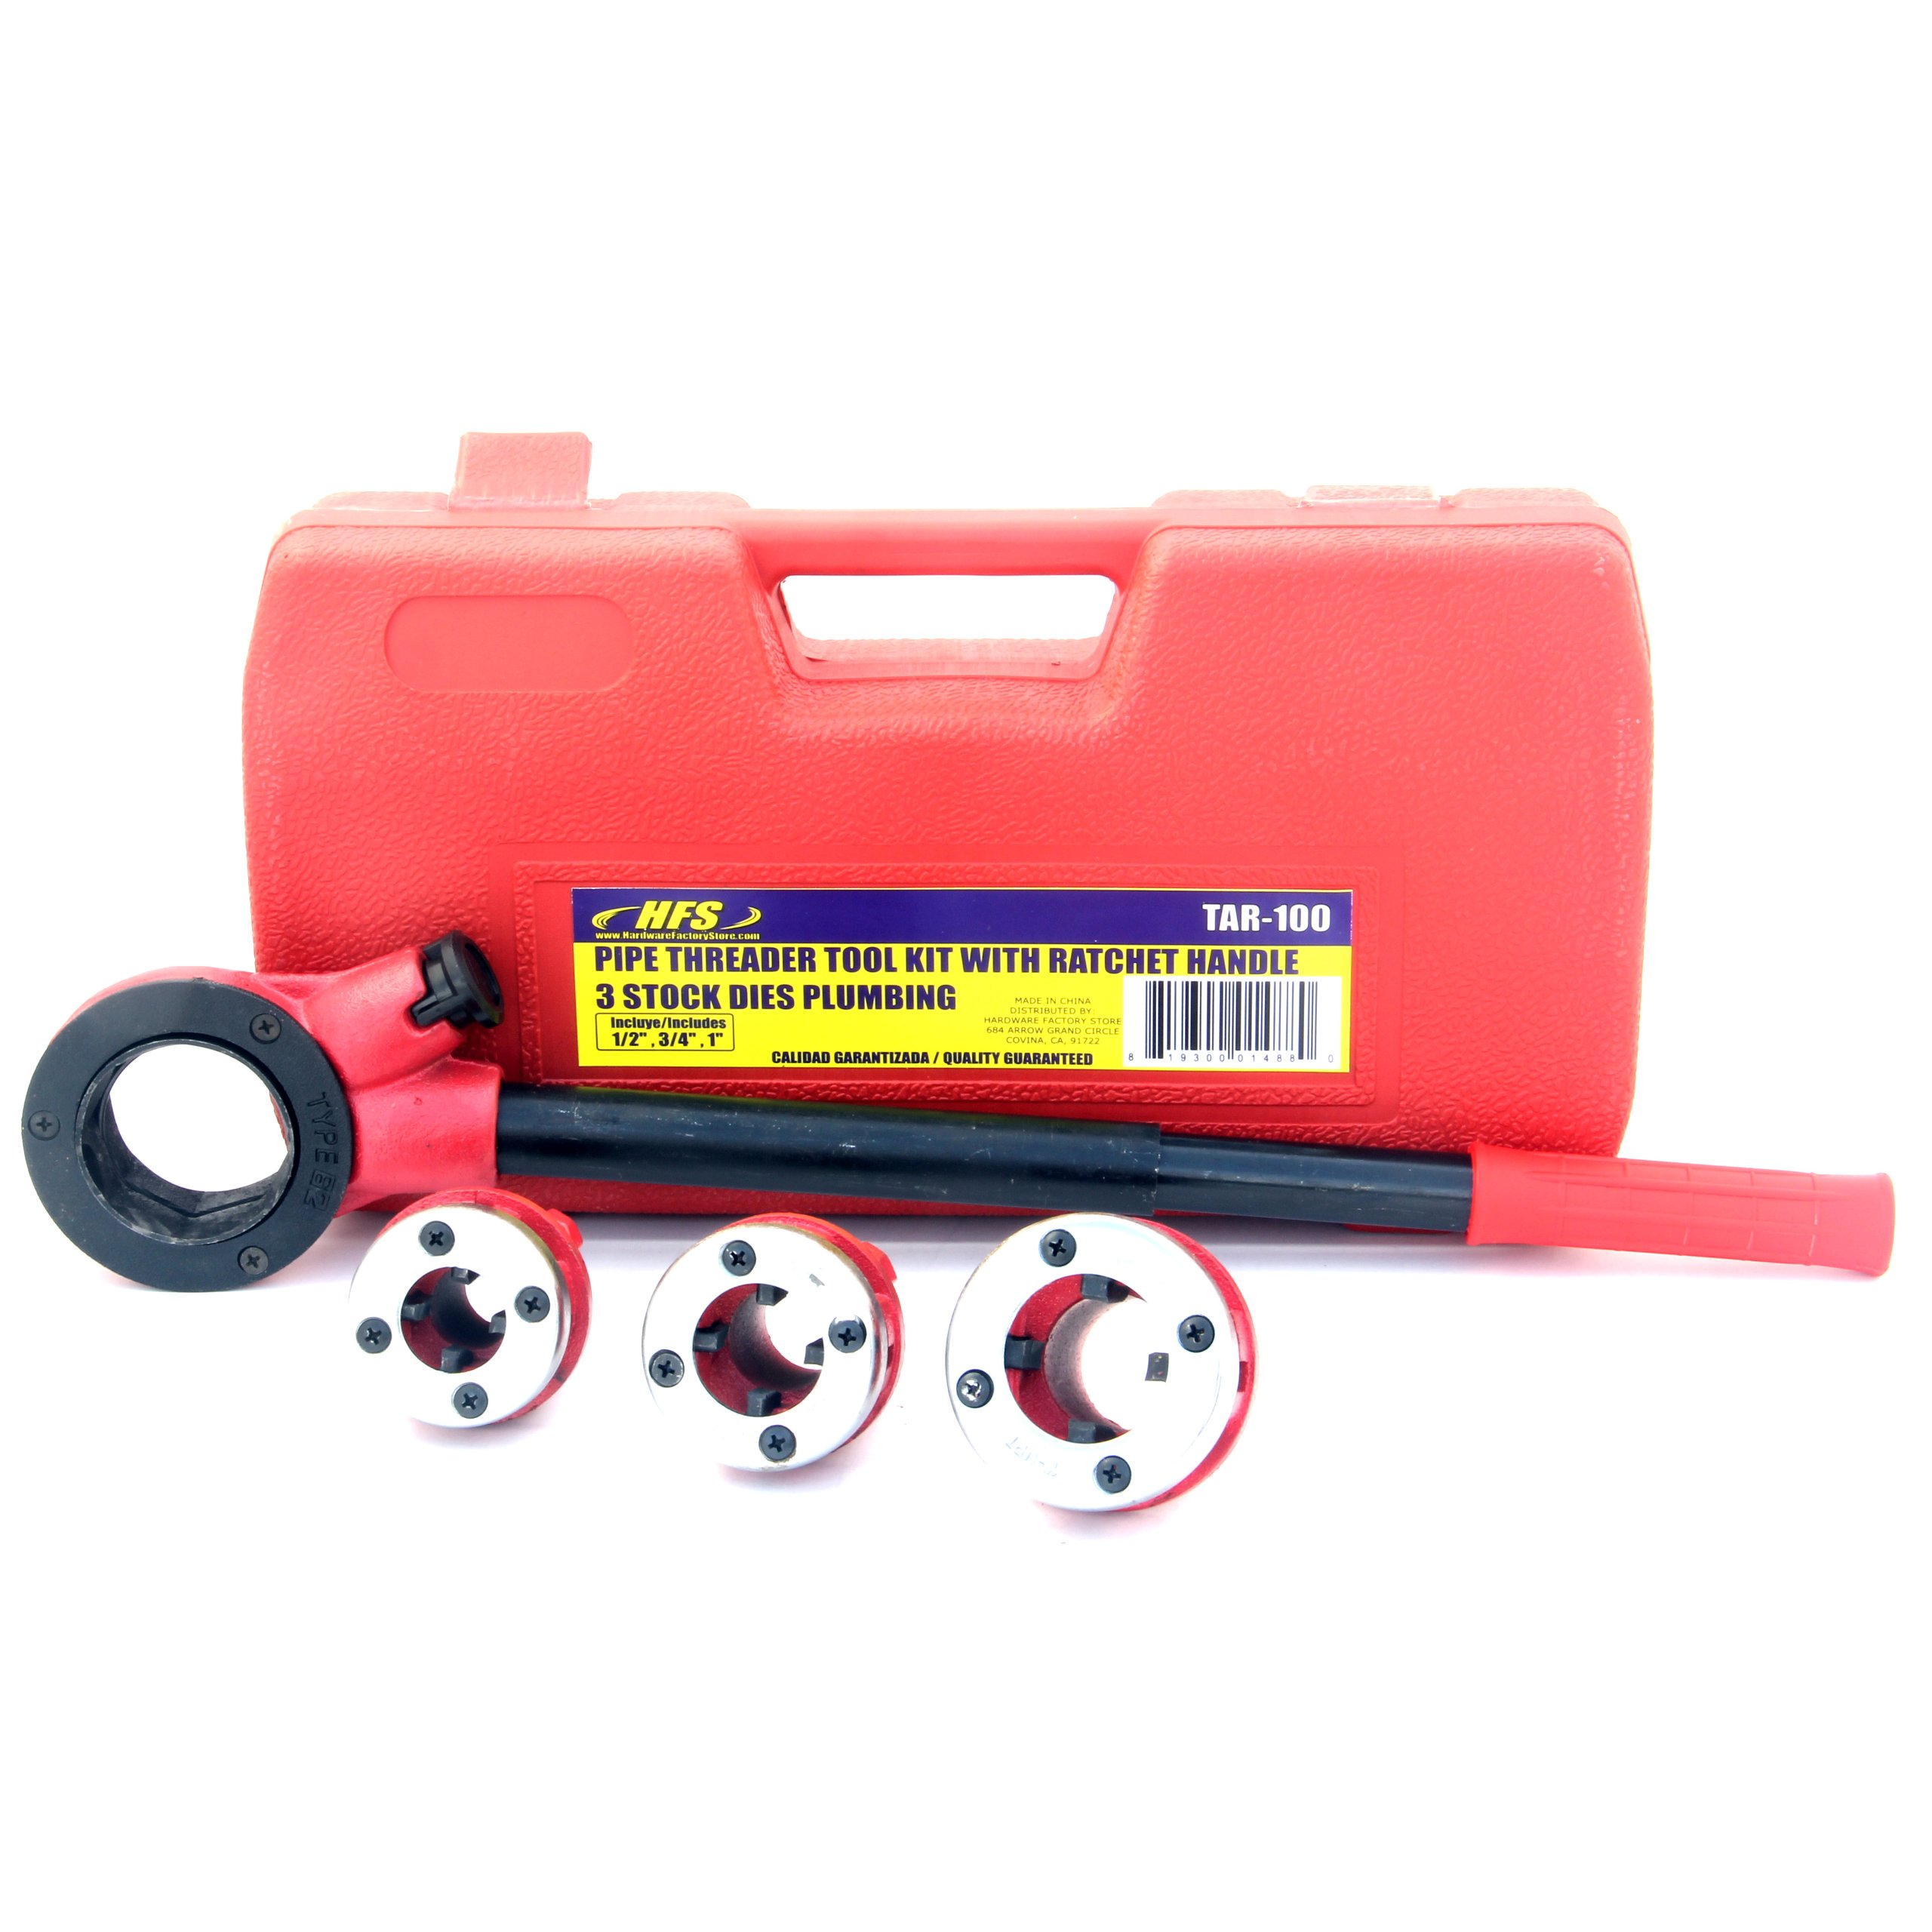 HFS (R Pipe Threading Tool with Ratchet Handle - 1/2'', 3/4'', 1''